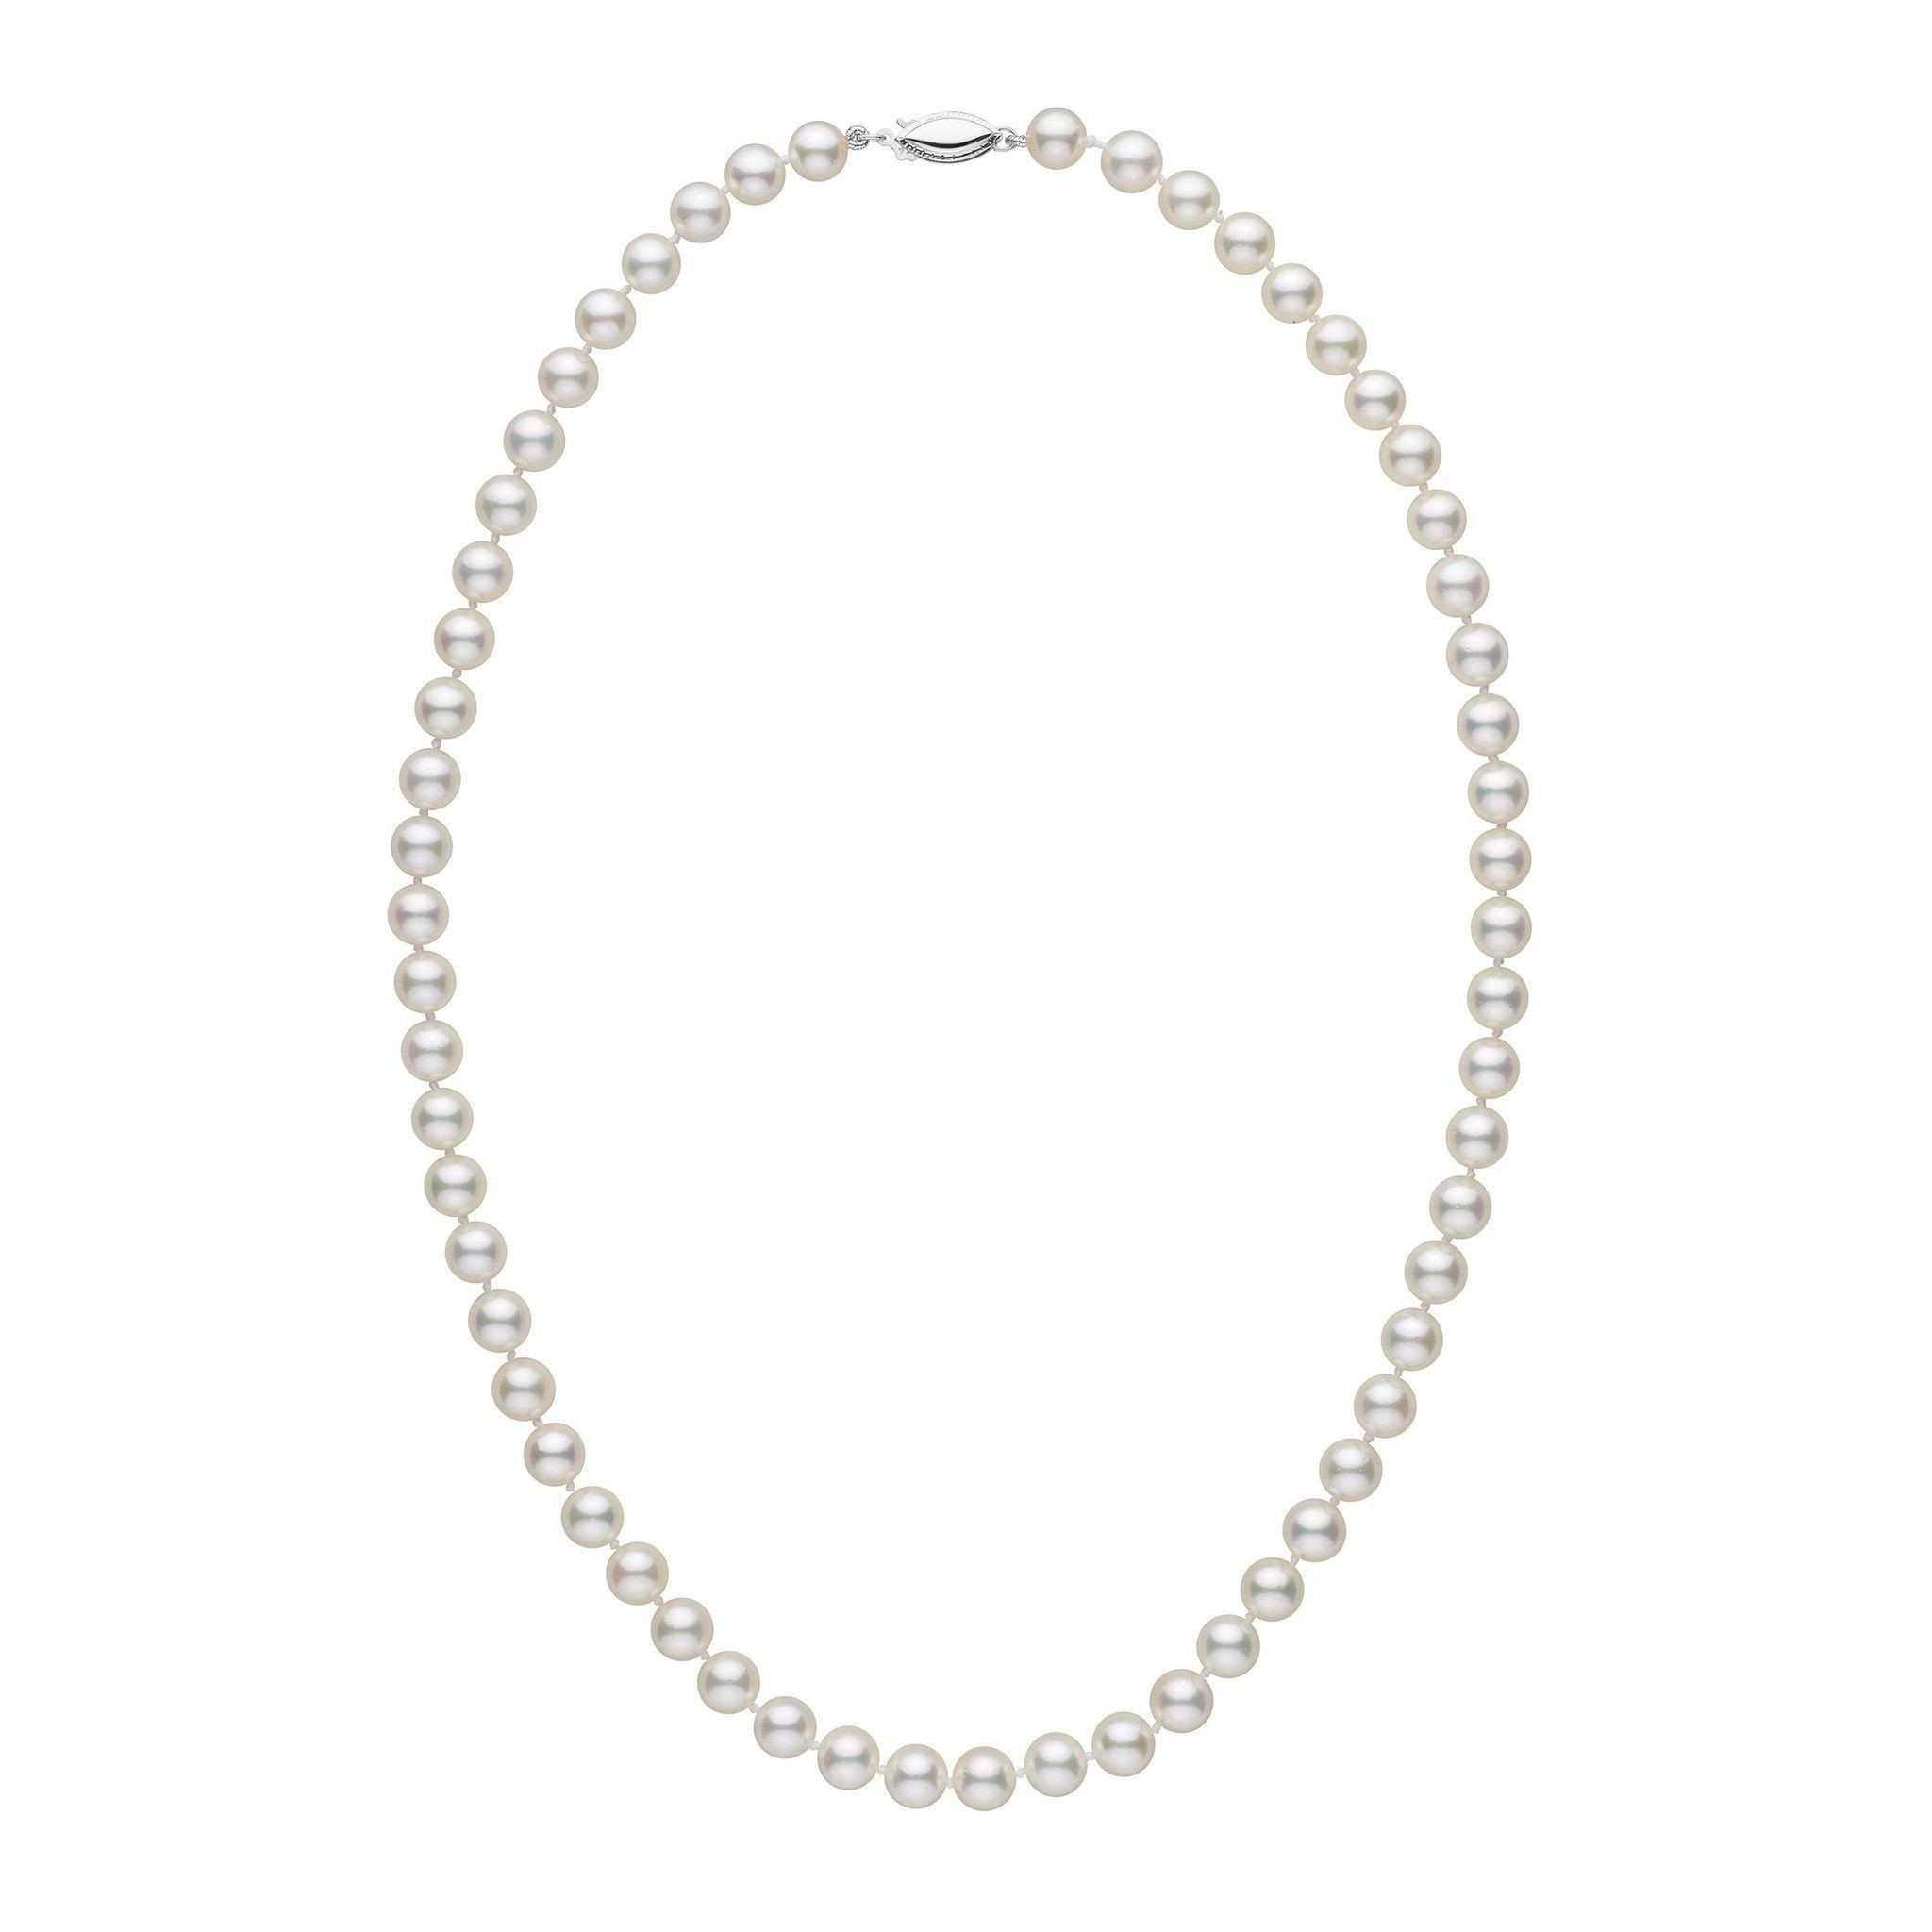 6.5-7.0 mm 18 Inch AA+ White Akoya Pearl Necklace